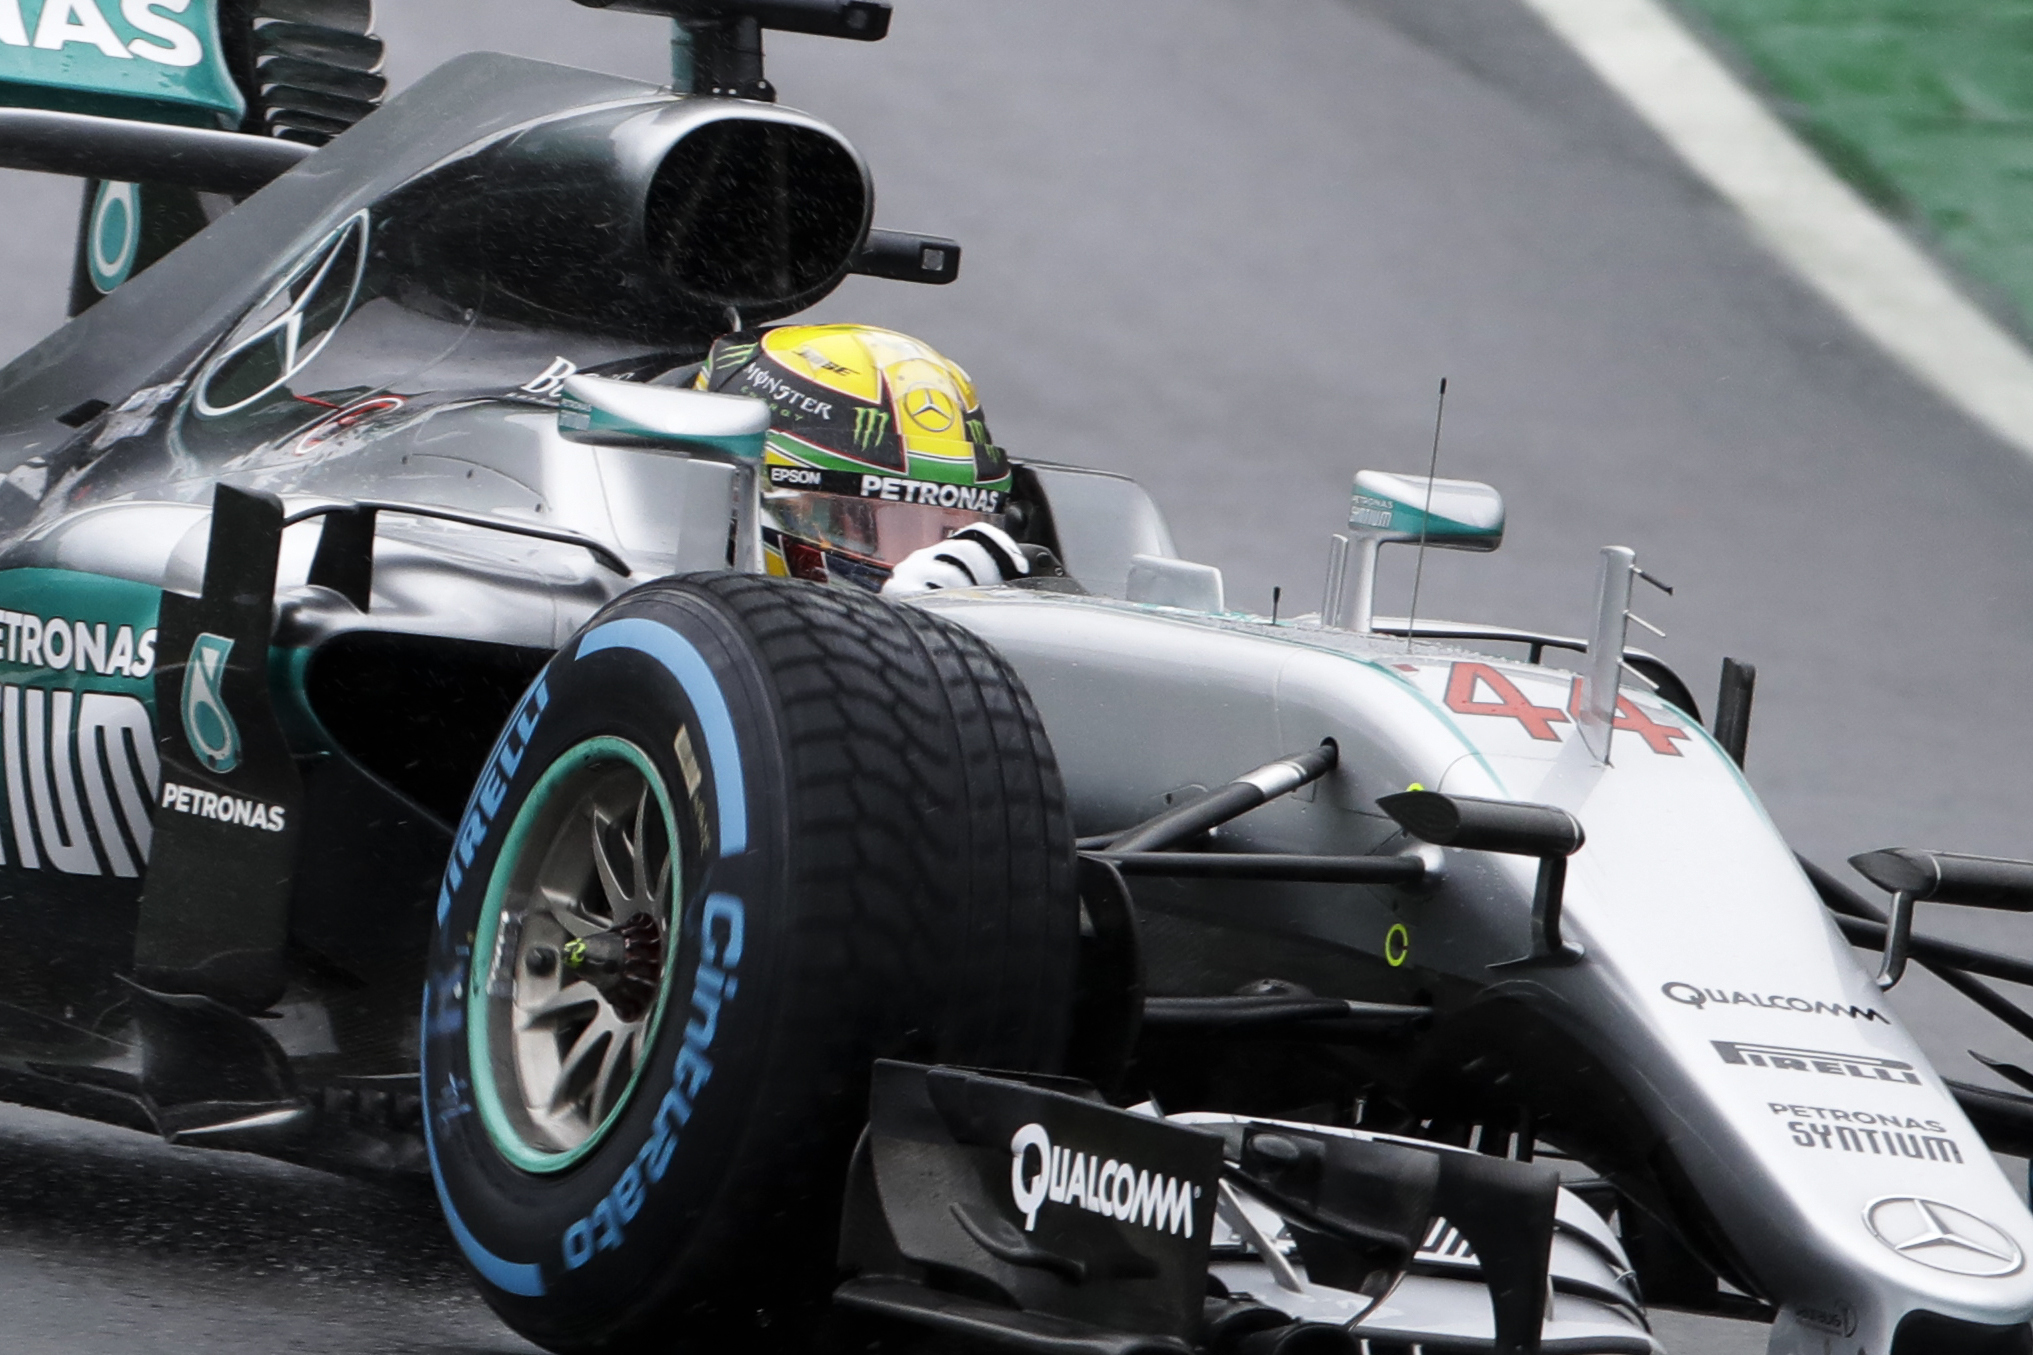 Mercedes driver Lewis Hamilton, of Britain, steers his car during the Brazilian Formula One Grand Prix at the Interlagos race track in Sao Paulo, Brazil, Sunday, Nov. 13, 2016. (AP Photo/Andre Penner)